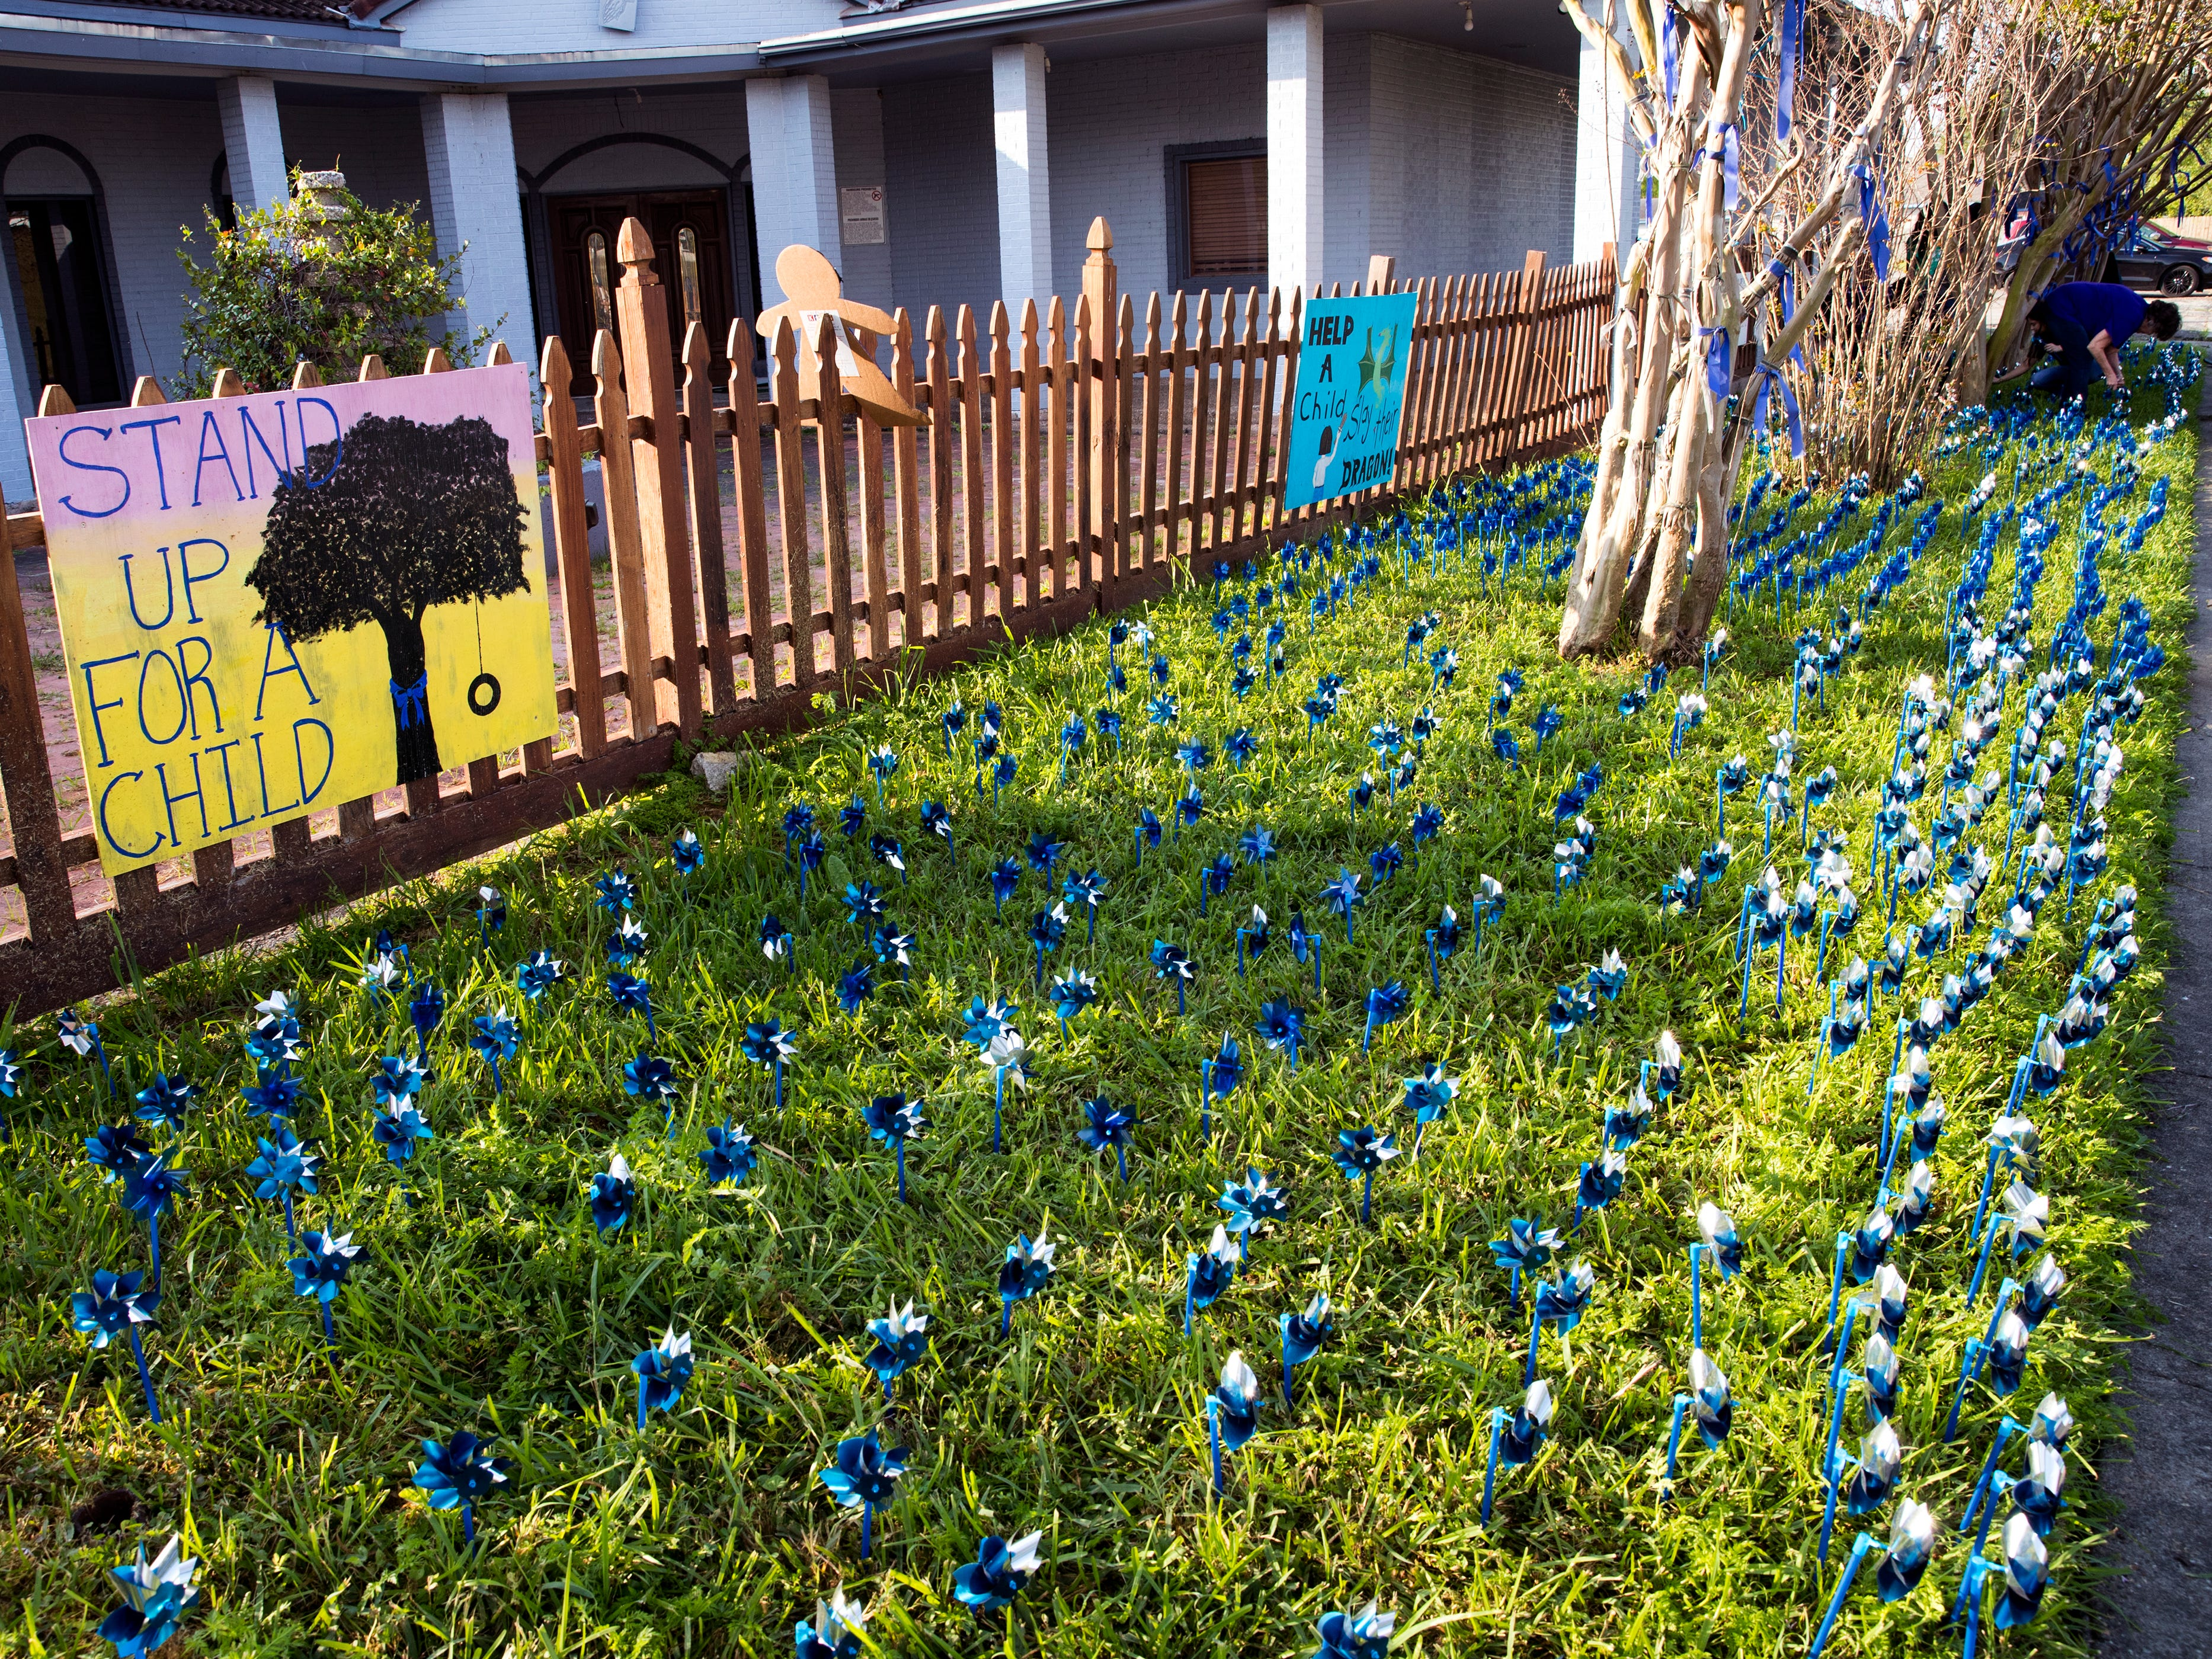 Pinwheels were installed in front of CASA of the Coastal Bend on Friday, March 29, 2019. The 1,066 pinwheels represent a child from the Coastal Bend who was in foster care last year and will stay up throughout the month of April, which is Child Abuse Awareness Month.